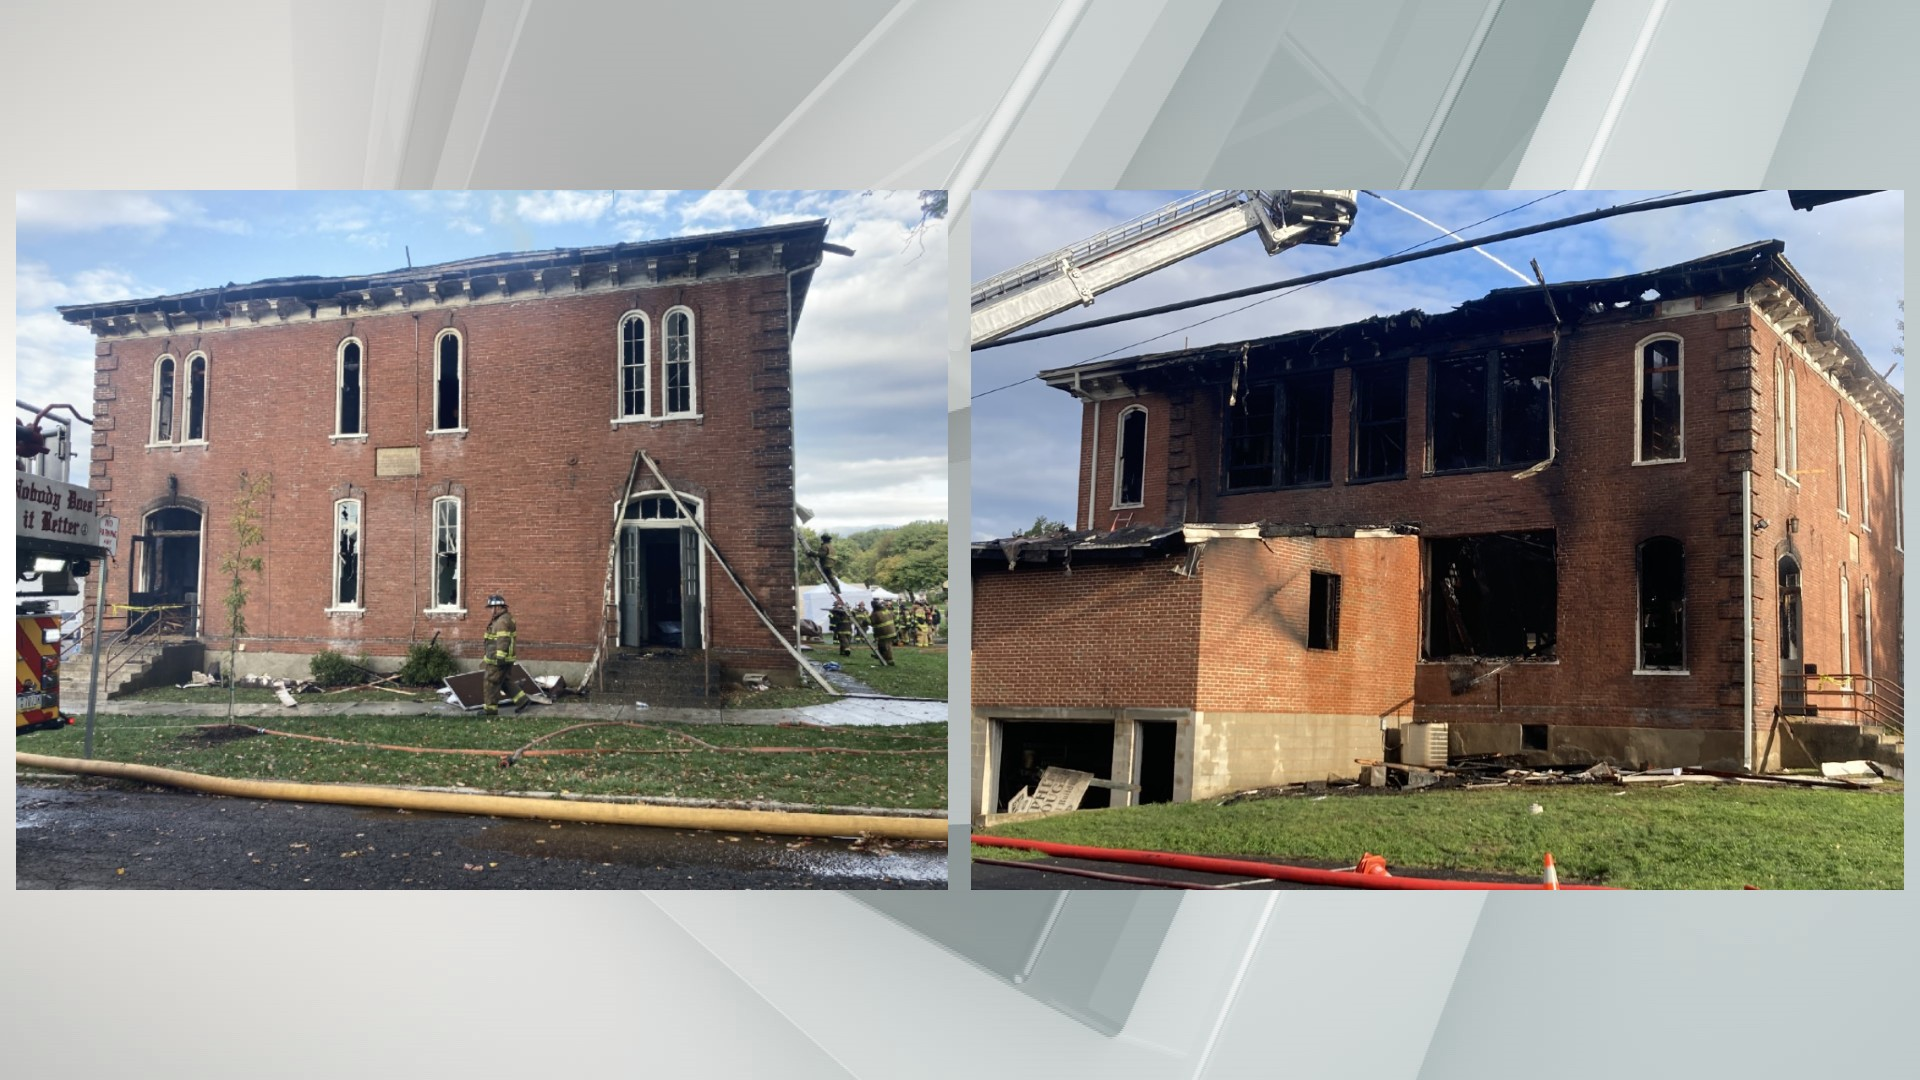 Historical Society of Dauphin County building fire